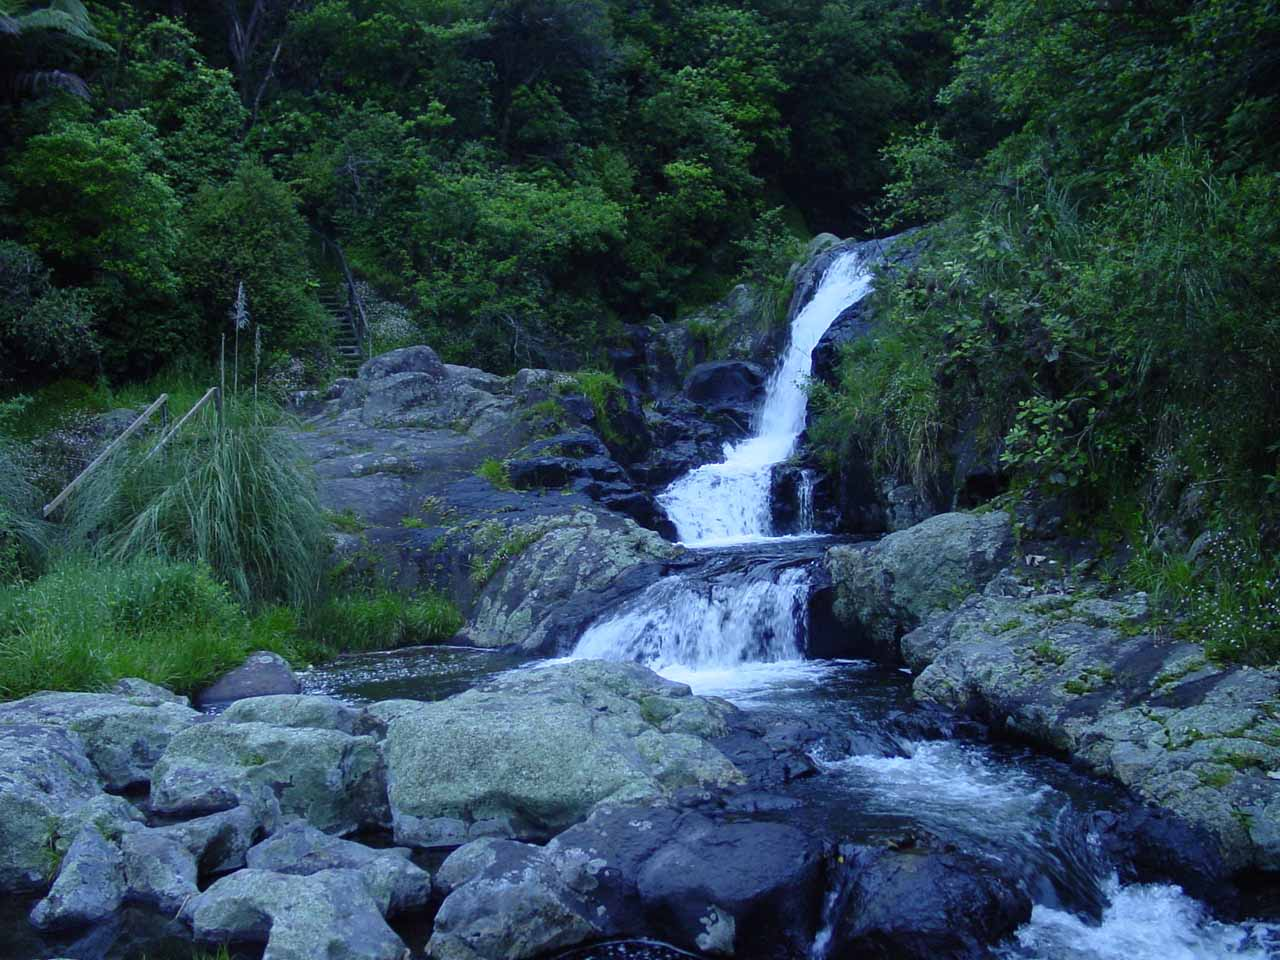 Looking back towards a partial view of the lowermost tier of Te Rererekawau Falls from the bridge crossing just downstream of it